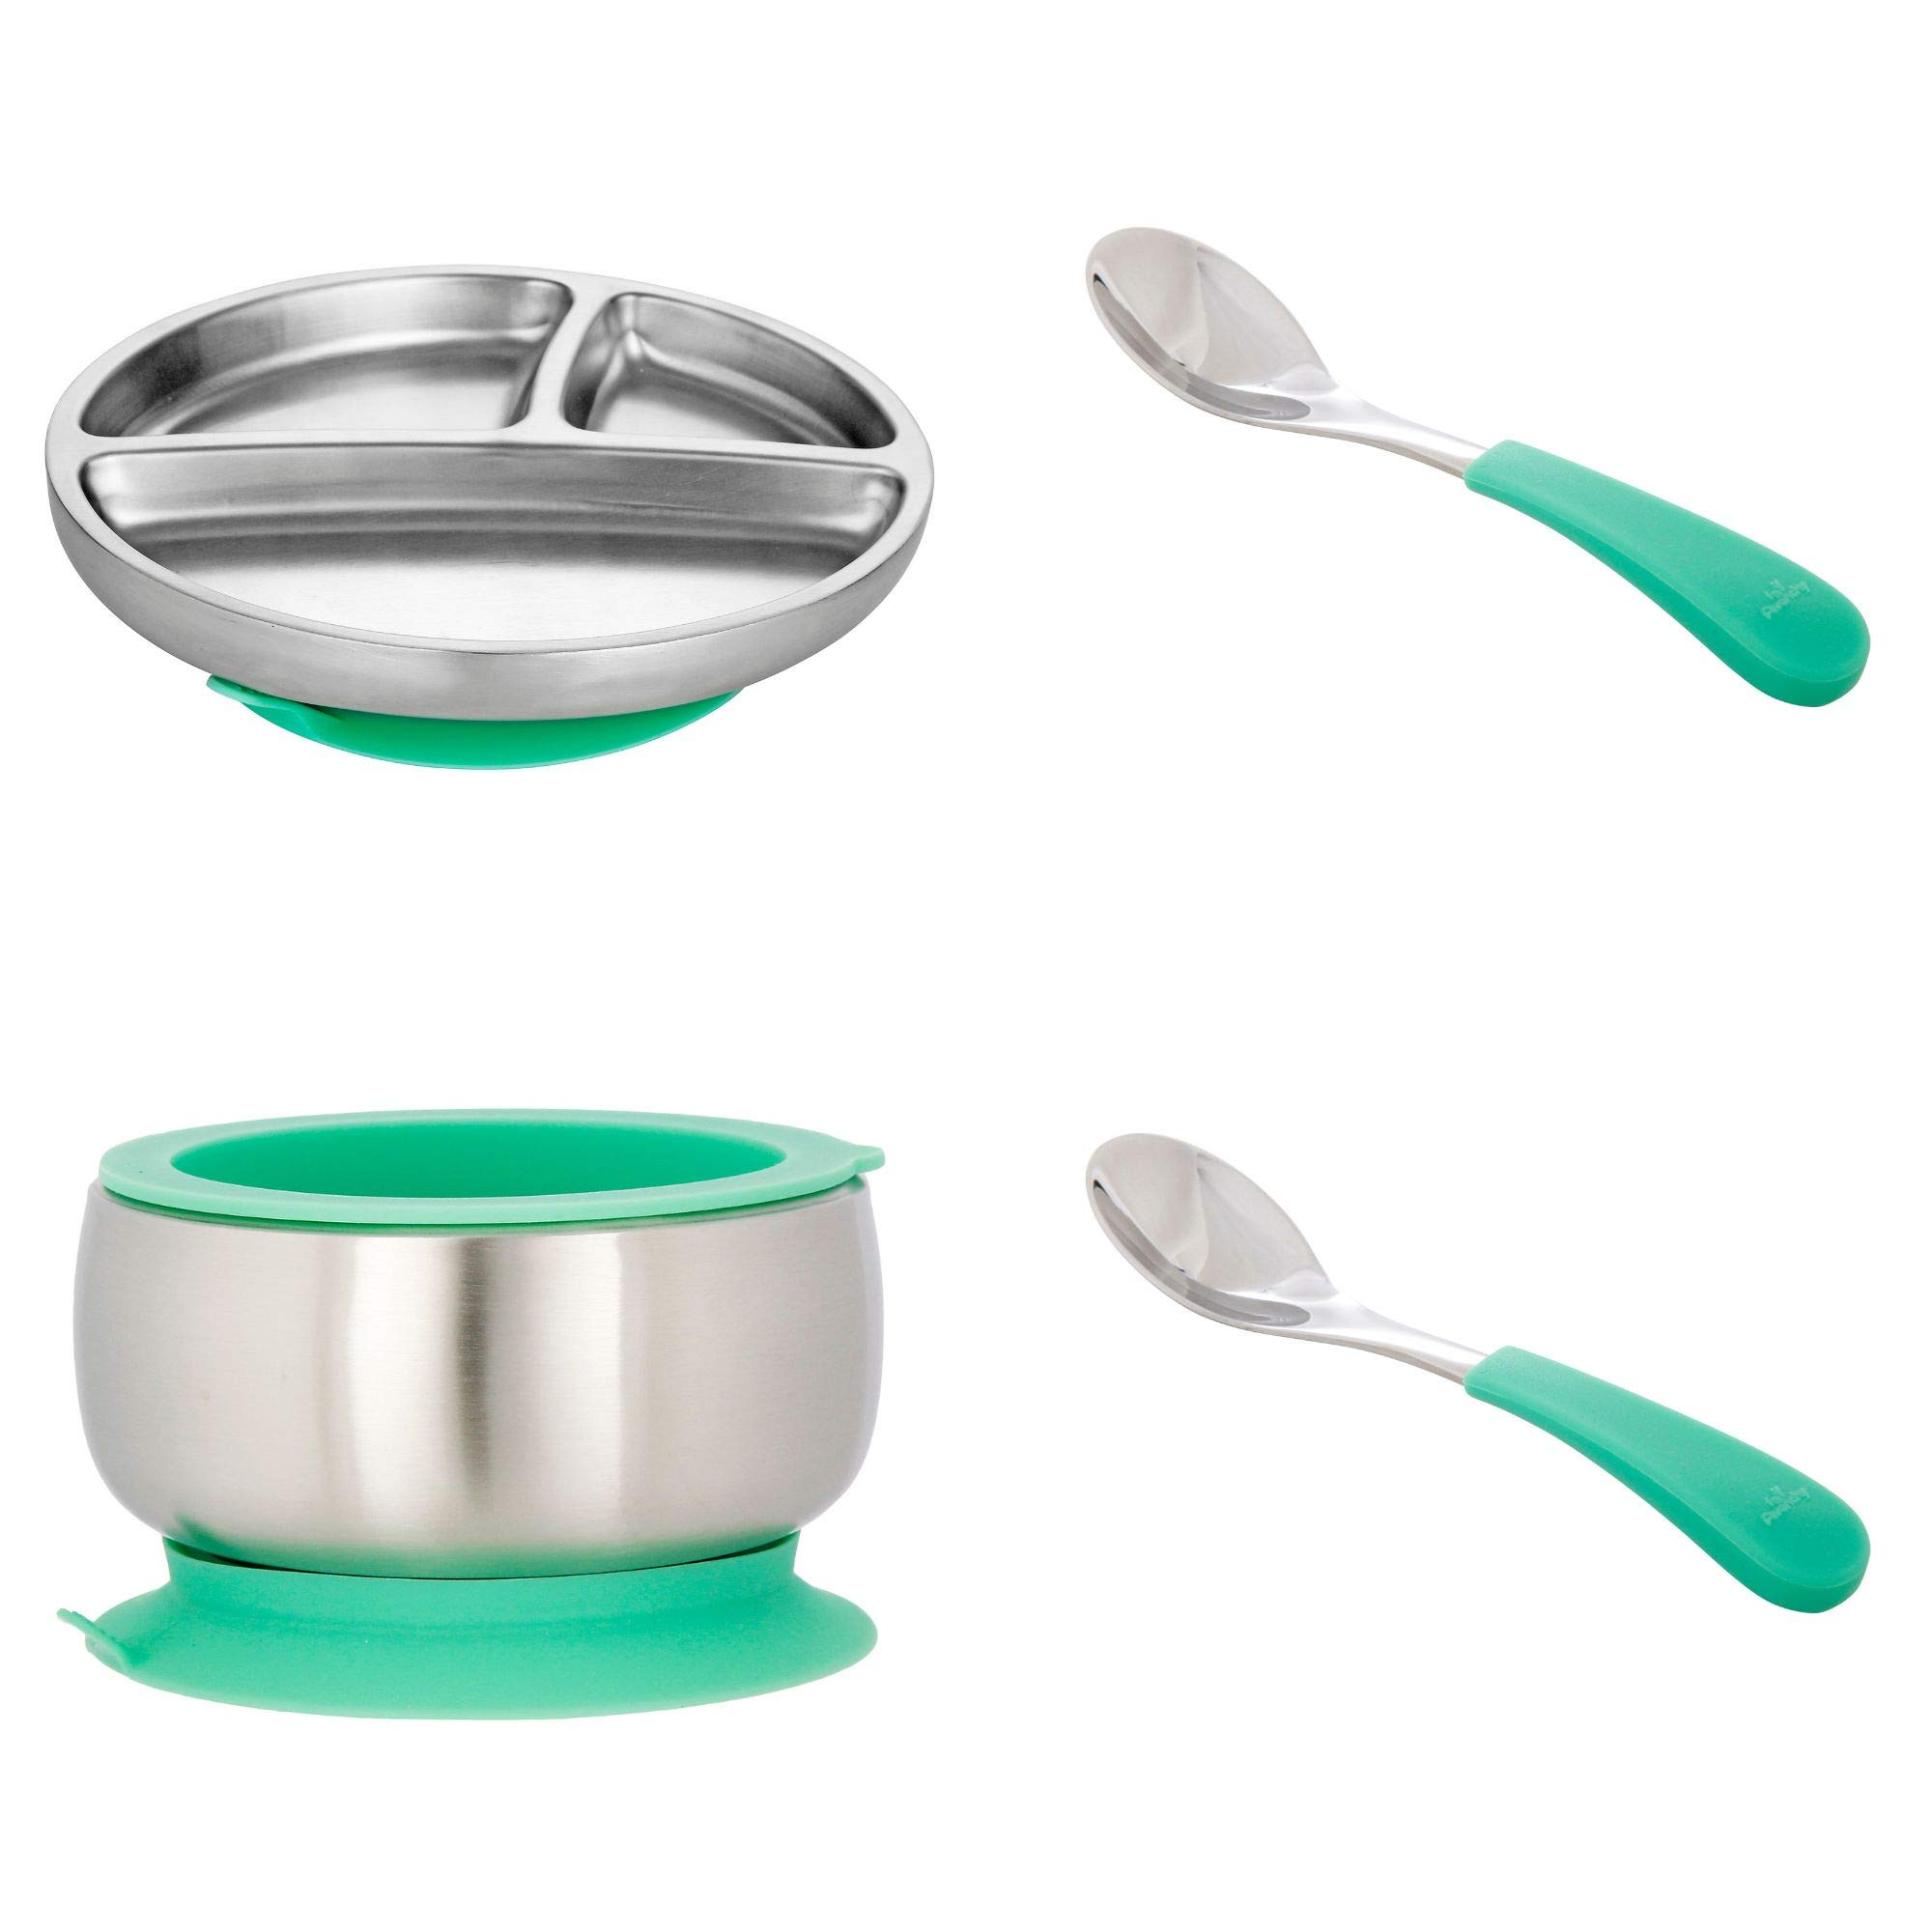 Avanchy Stainless Steel Toddler Feeding Divided Plate, Bowl & Spoons + Silicone Suction, Infant, Kid or Child Plates. 18/8, BPA Free, BPS Free, Lead Free and Phthalate Free. (Green Gift Set) by Avanchy